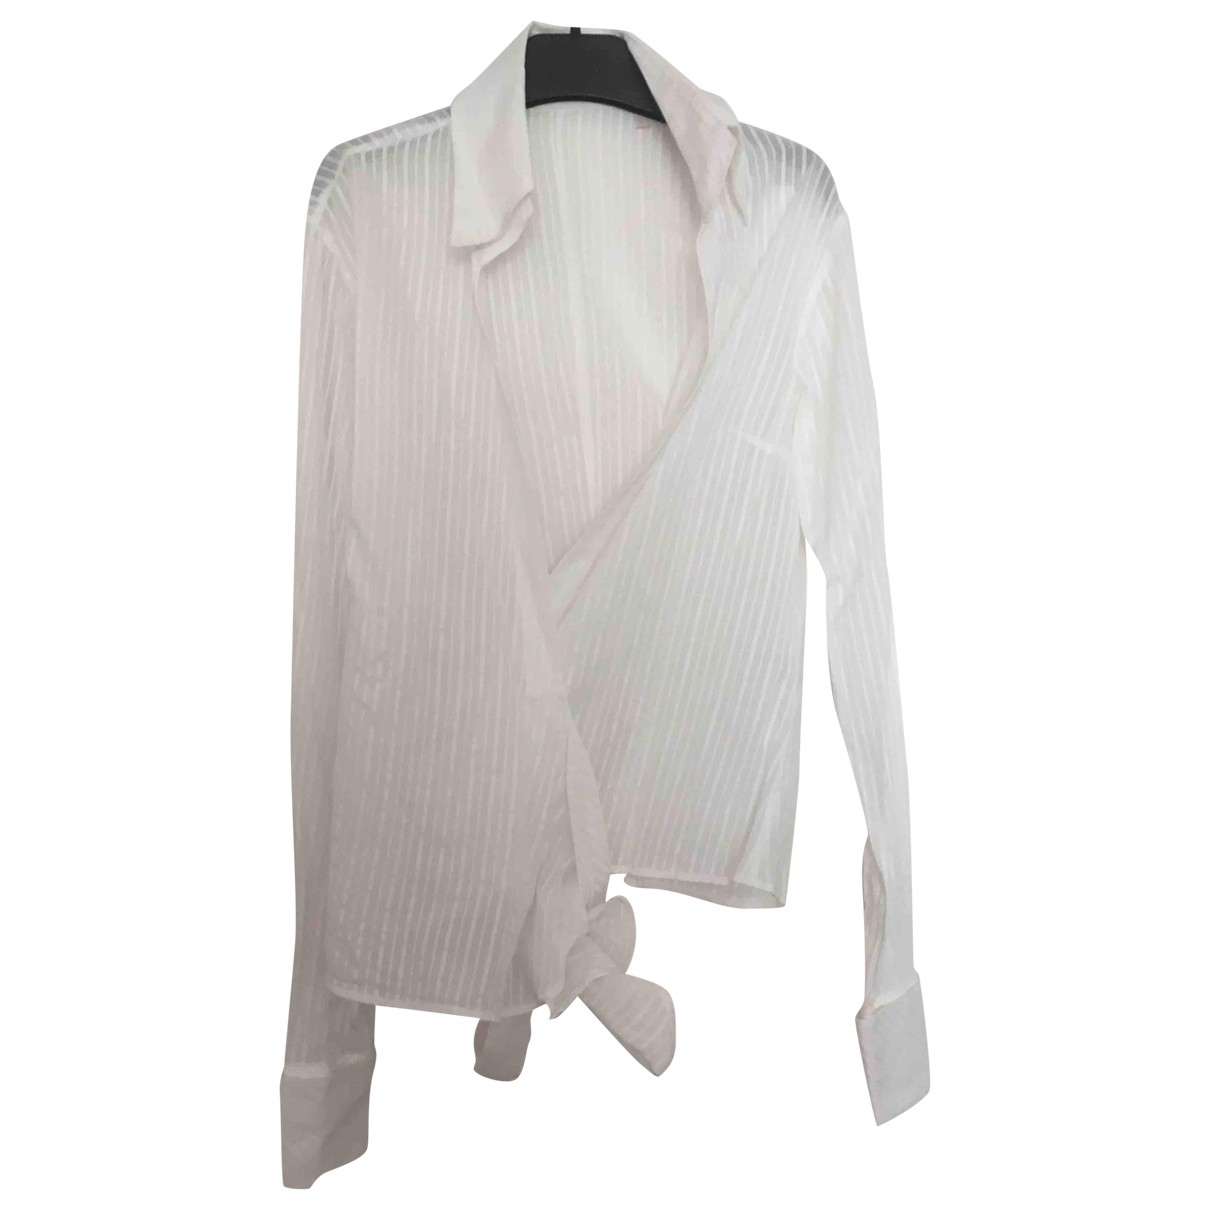 Massimo Dutti \N Top in  Weiss Baumwolle